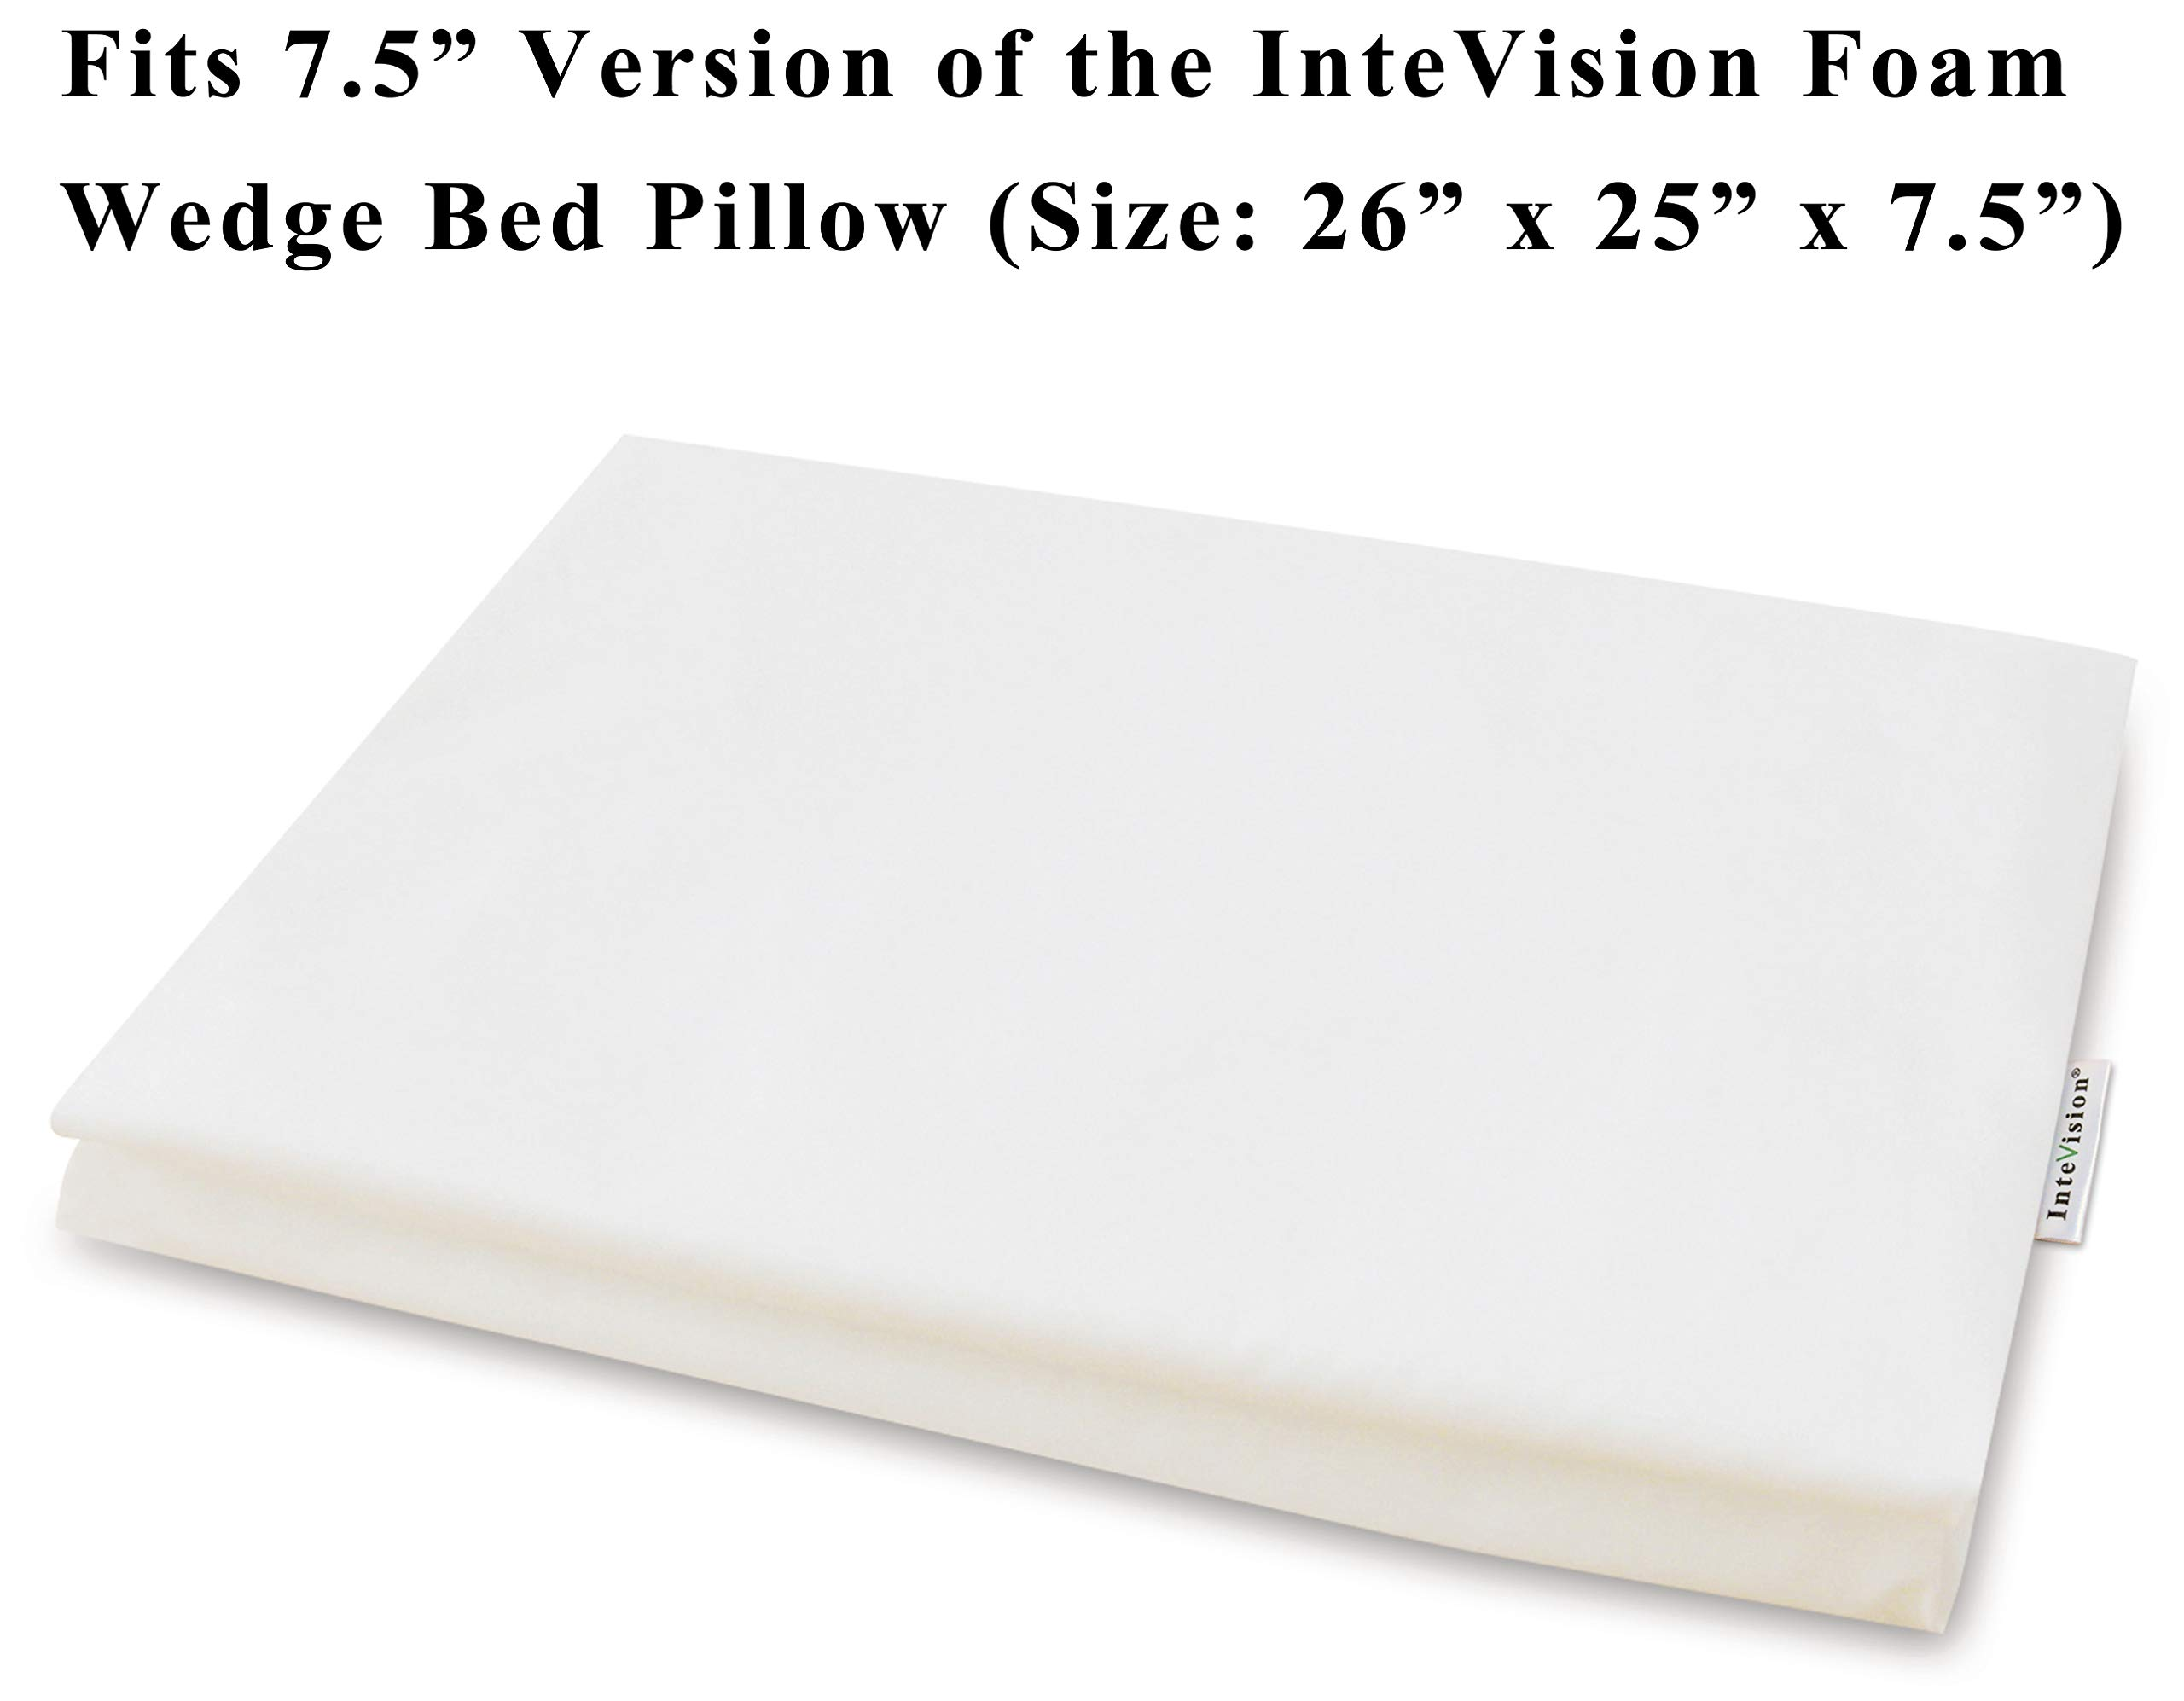 InteVision 400 Thread Count, 100% Egyptian Cotton Pillowcase. Designed to Fit the 7.5'' version of the InteVision Foam Wedge Bed Pillow (26'' x 25'' x 7.5'')